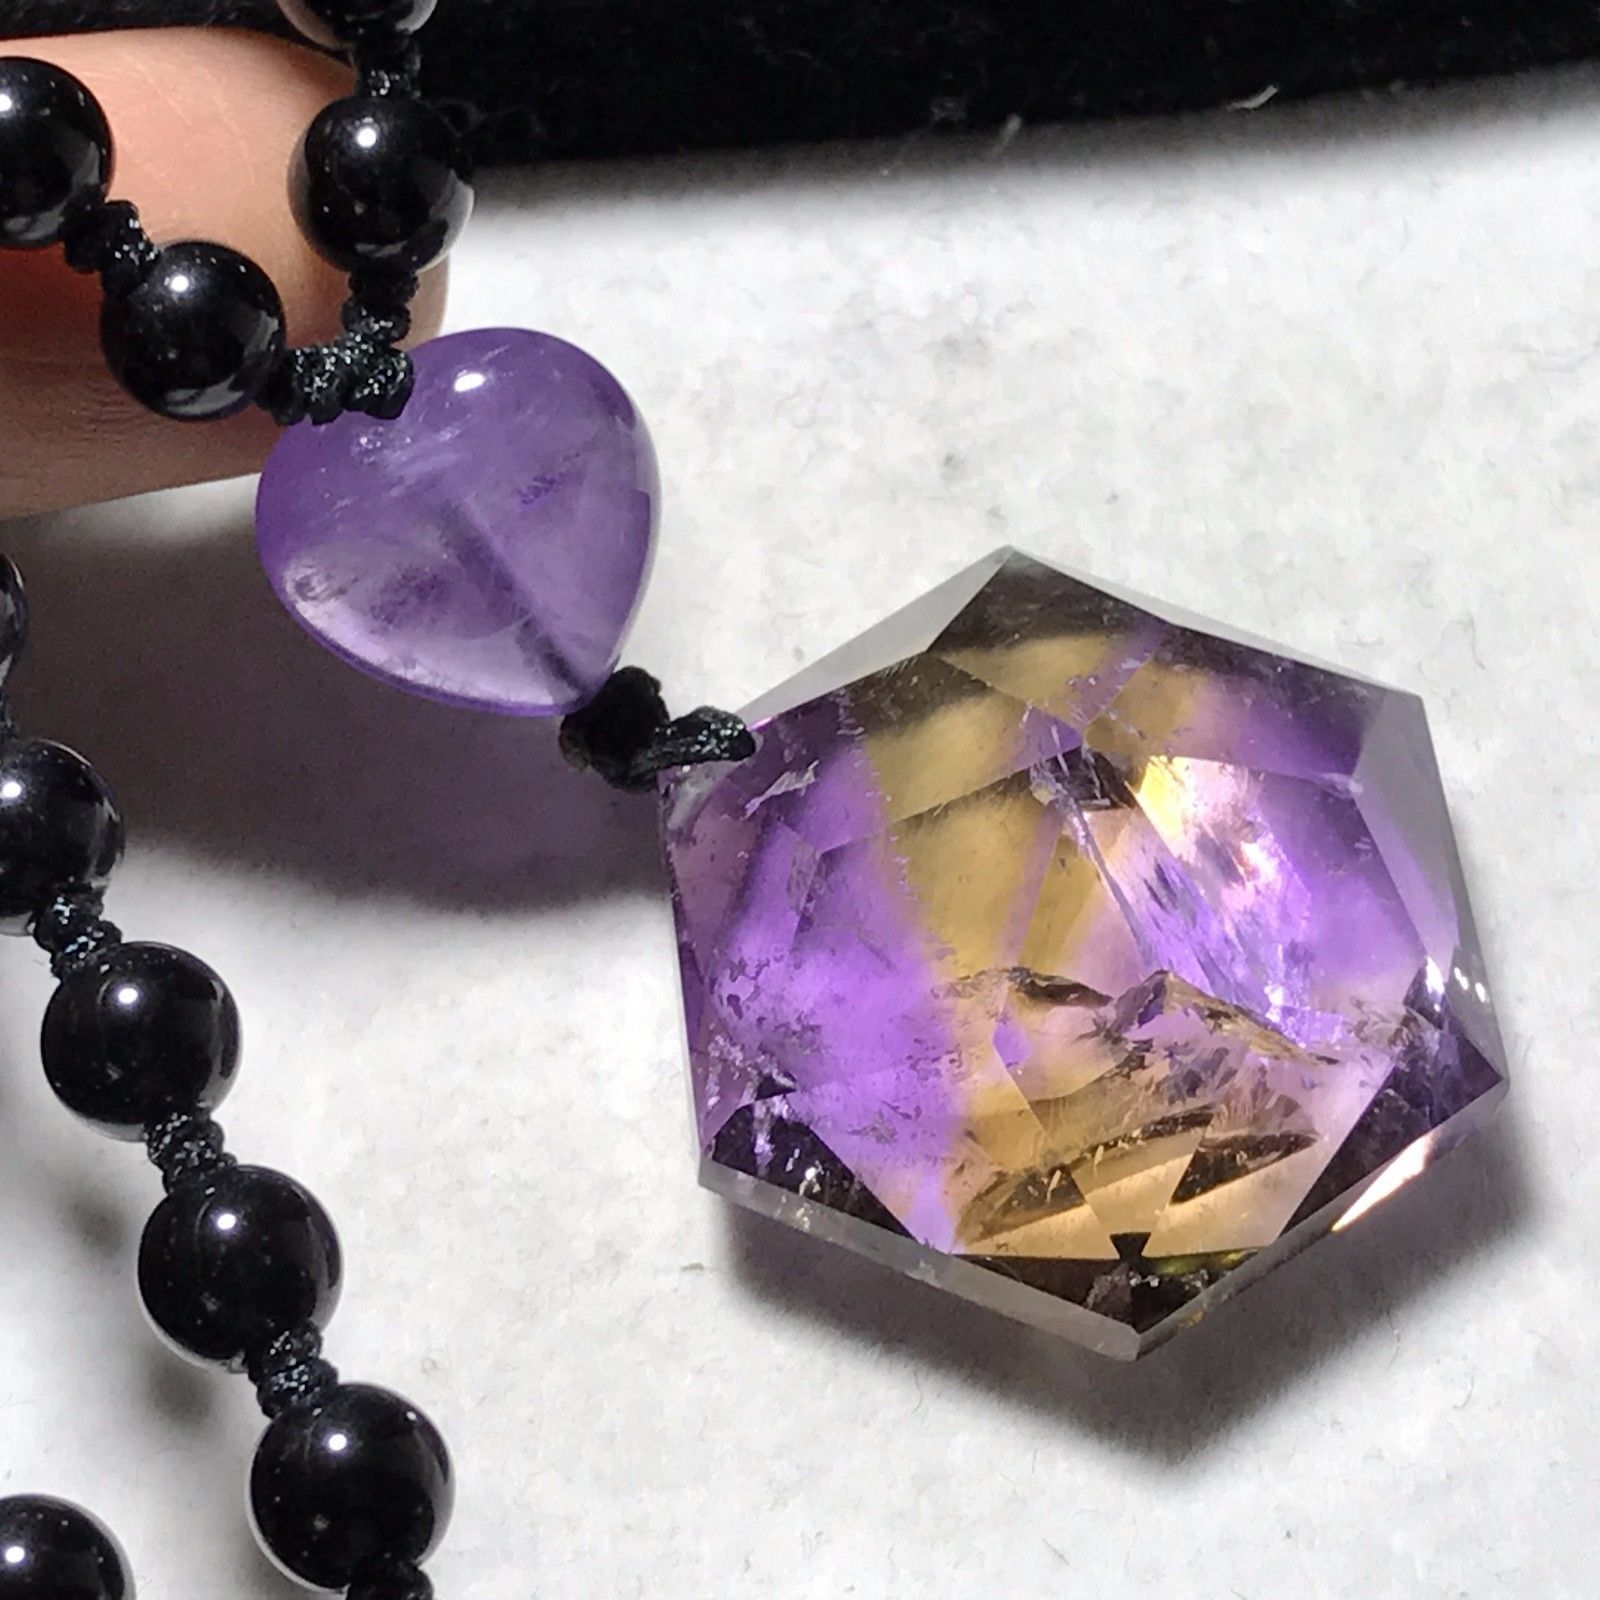 Primary image for Natural Ametrine Quartz Crystal Star of David Pendant Reiki Healing 19g H092803